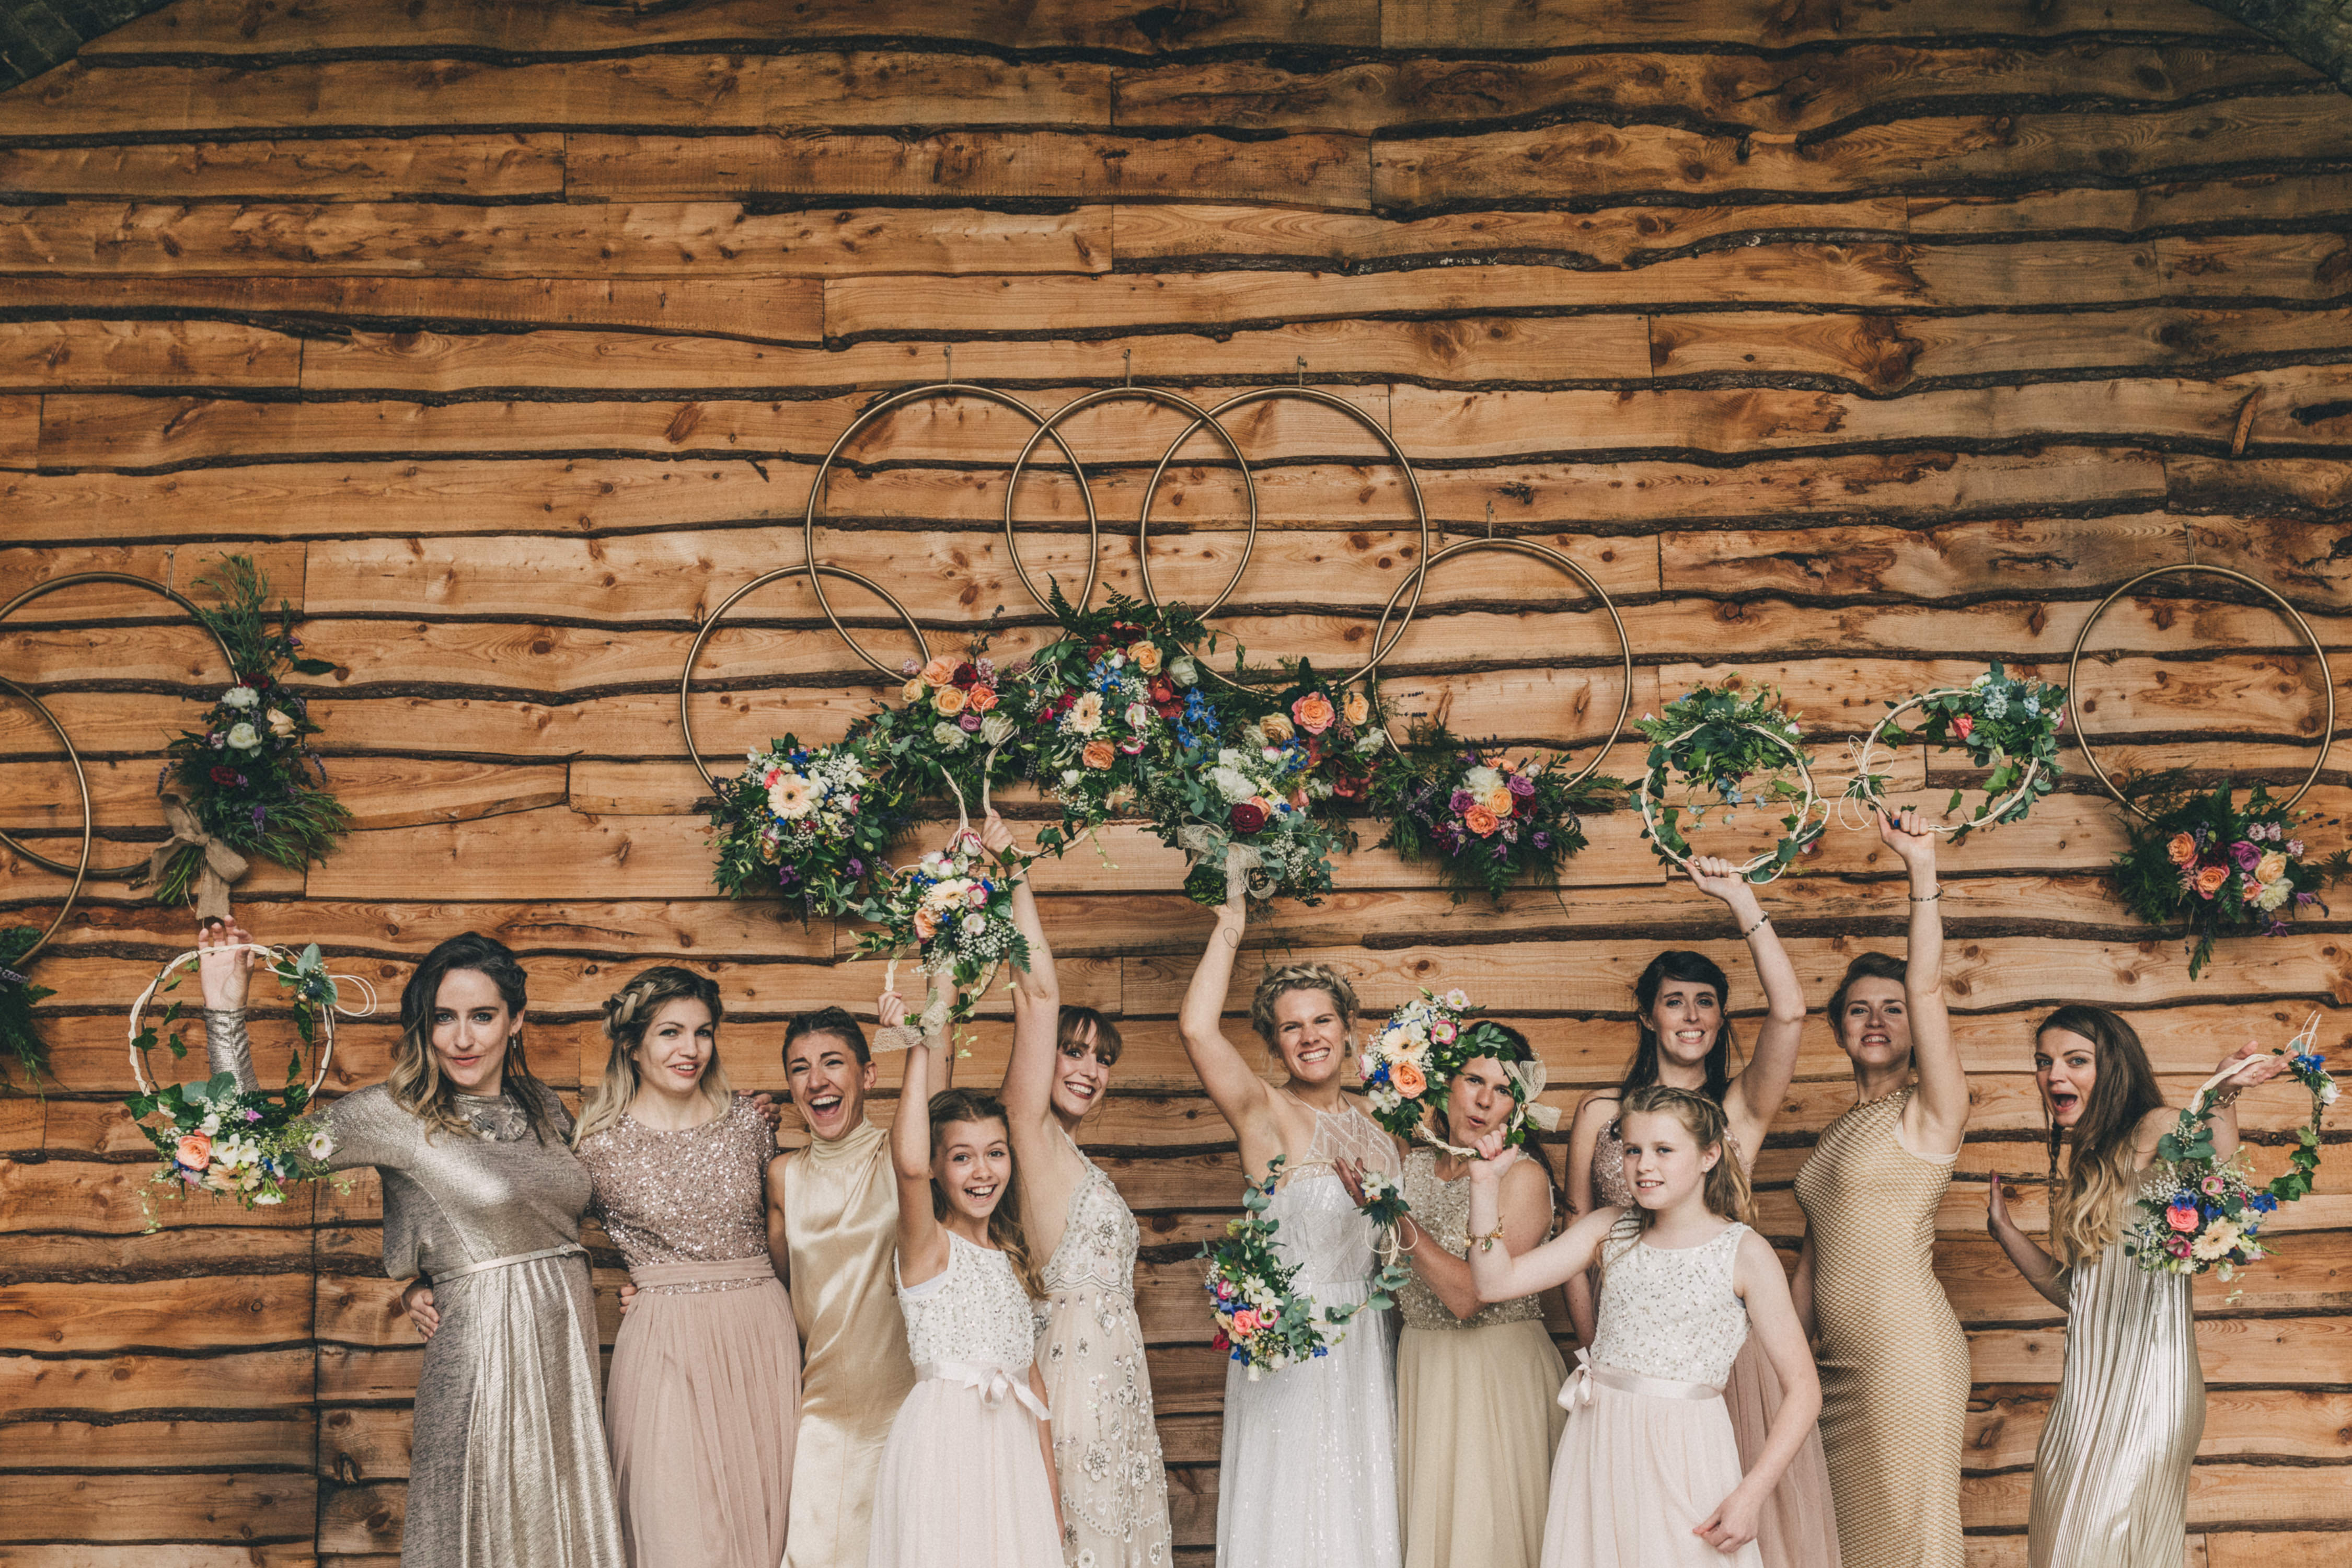 You can't have your wedding photos and not get this fun shot of the bridal party underneath the Old Railway Bridge here at Tower Hill Barns in North Wales, taken by Claire Penn Photography